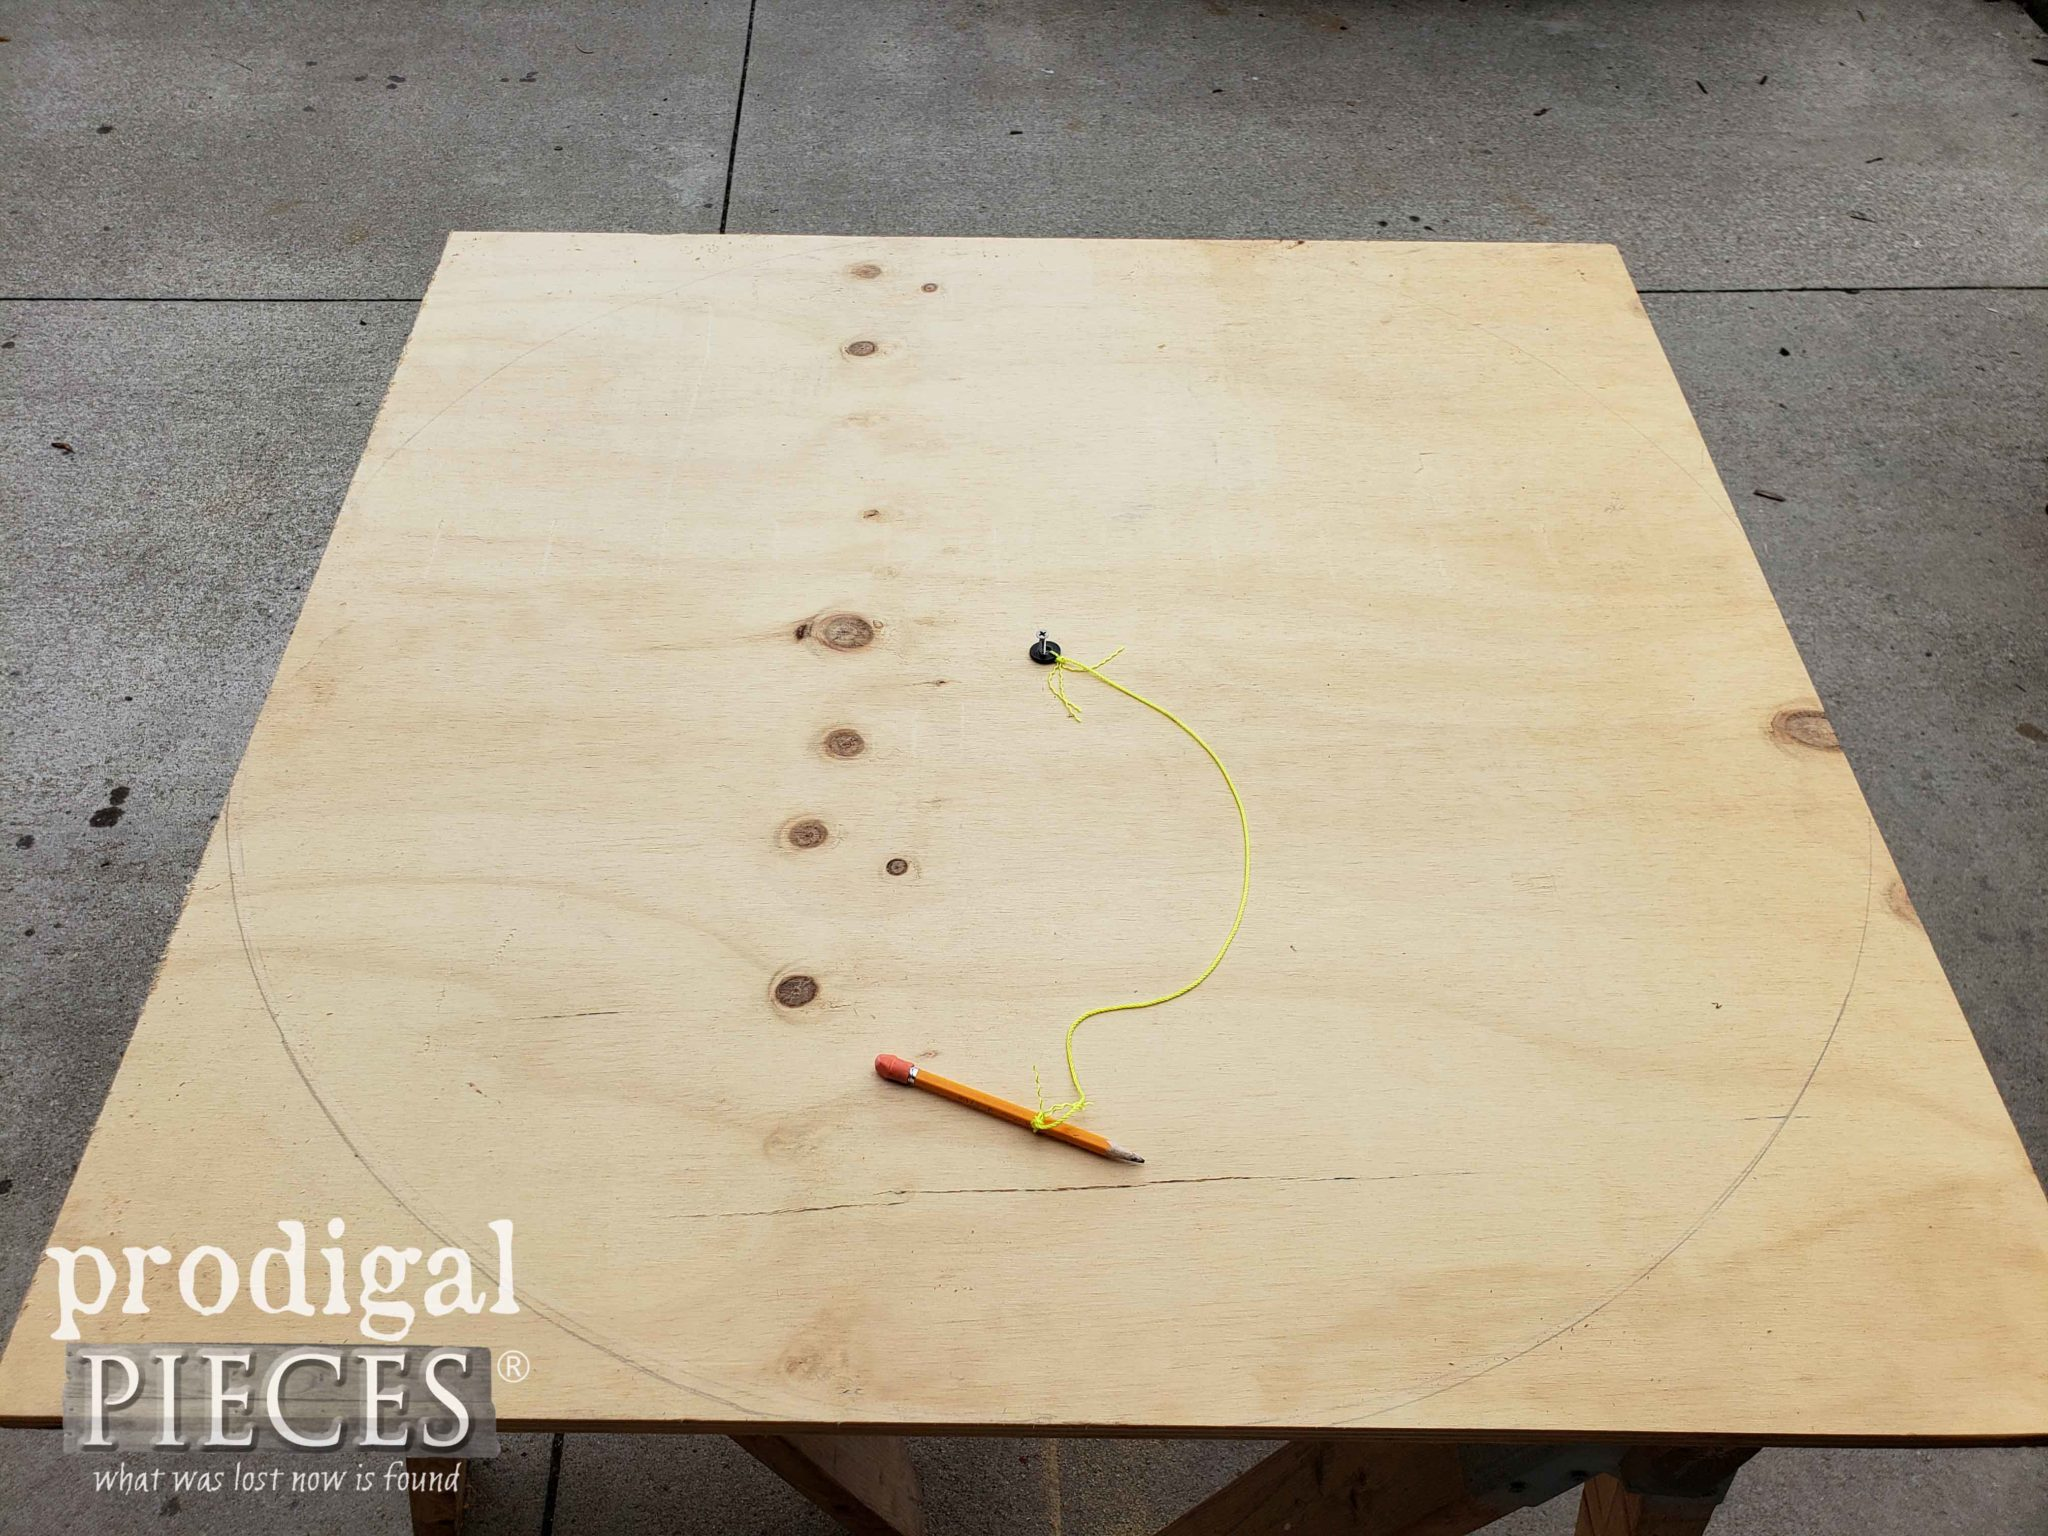 Drawn Plywood Circle for DIY Furniture Lazy Susan | prodigalpieces.com